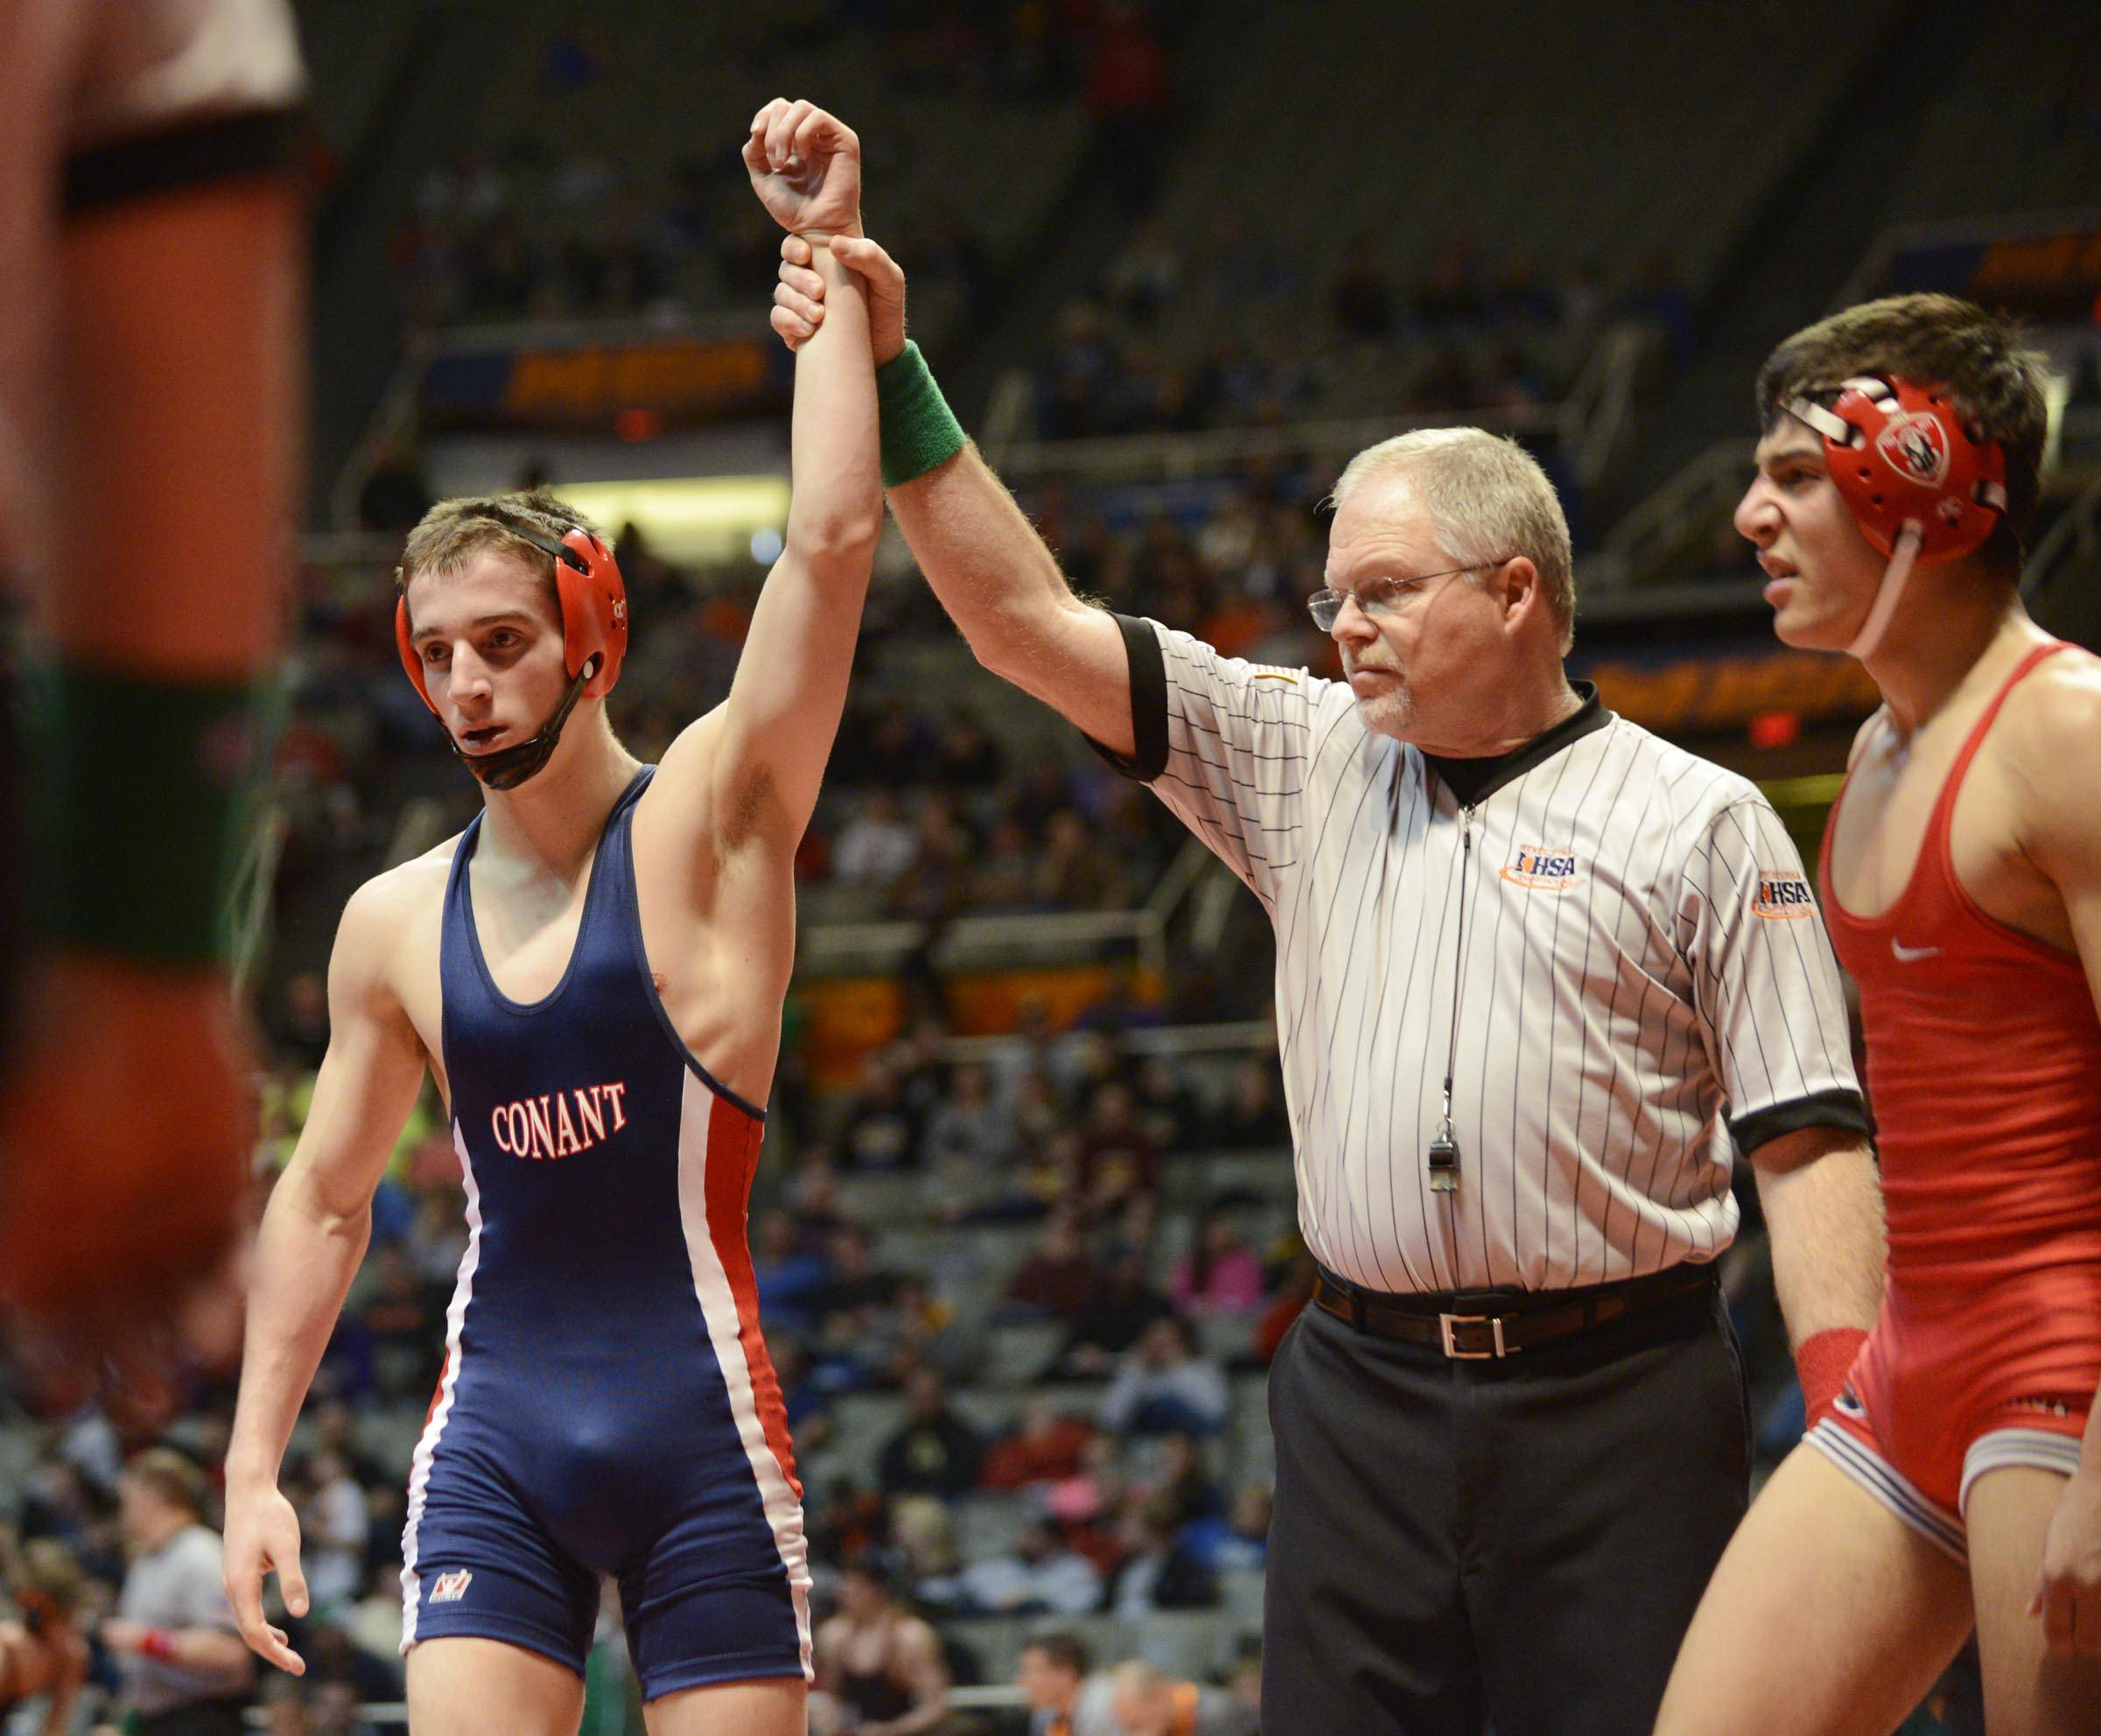 Bobby Alexander of Conant High School is declared the winner after beating Ameen Hamdan of Marist High School Saturday in the 132-pound weight class third place match of the wrestling IHSA Class 3A state tournament at State Farm Center in Champaign.